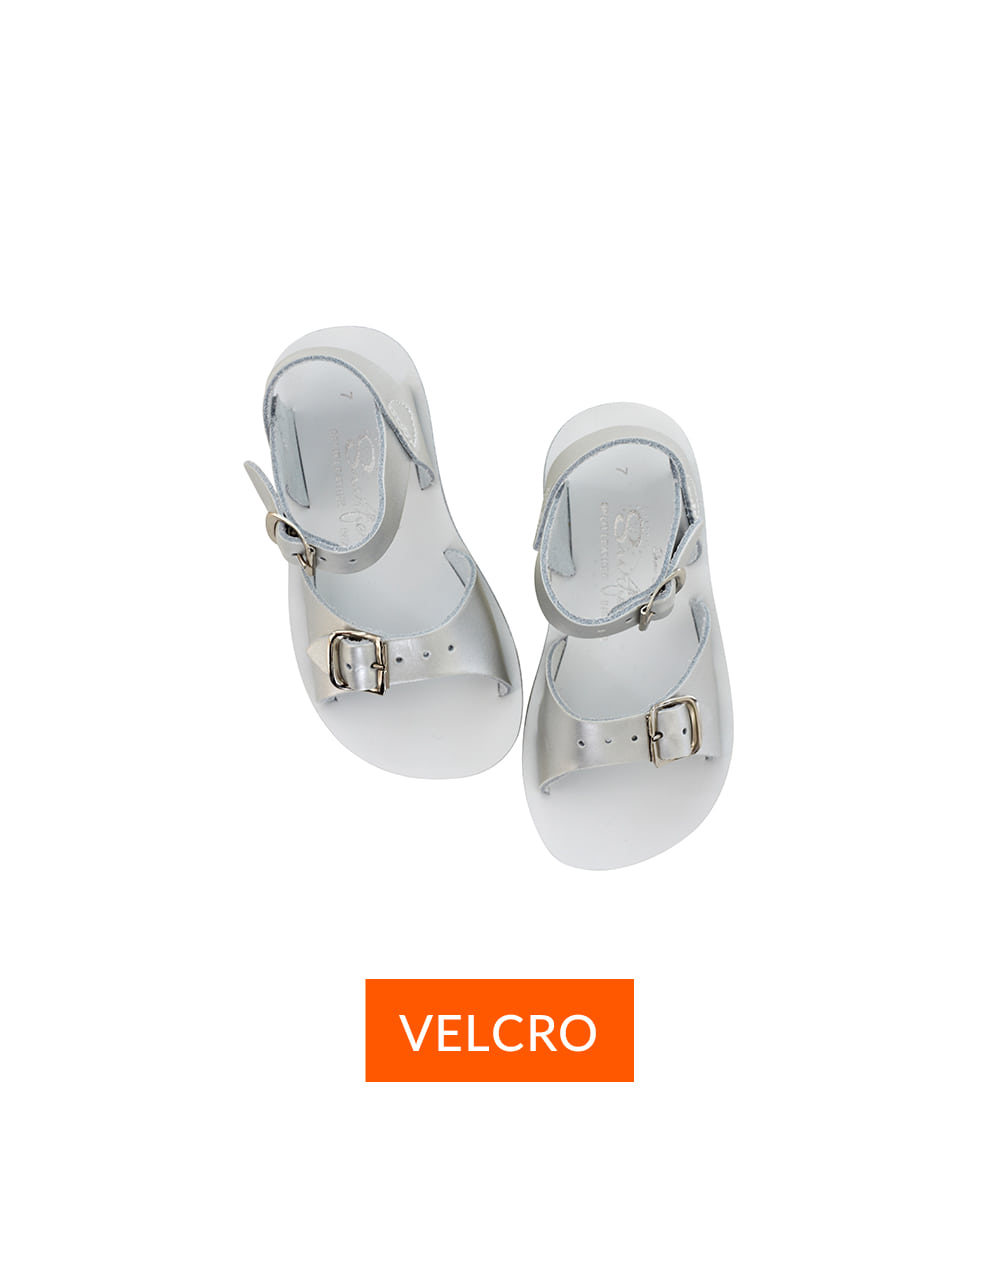 SALT-WATER SANDAL  CHILD VELCRO SURFER  PREMIUM  Silver